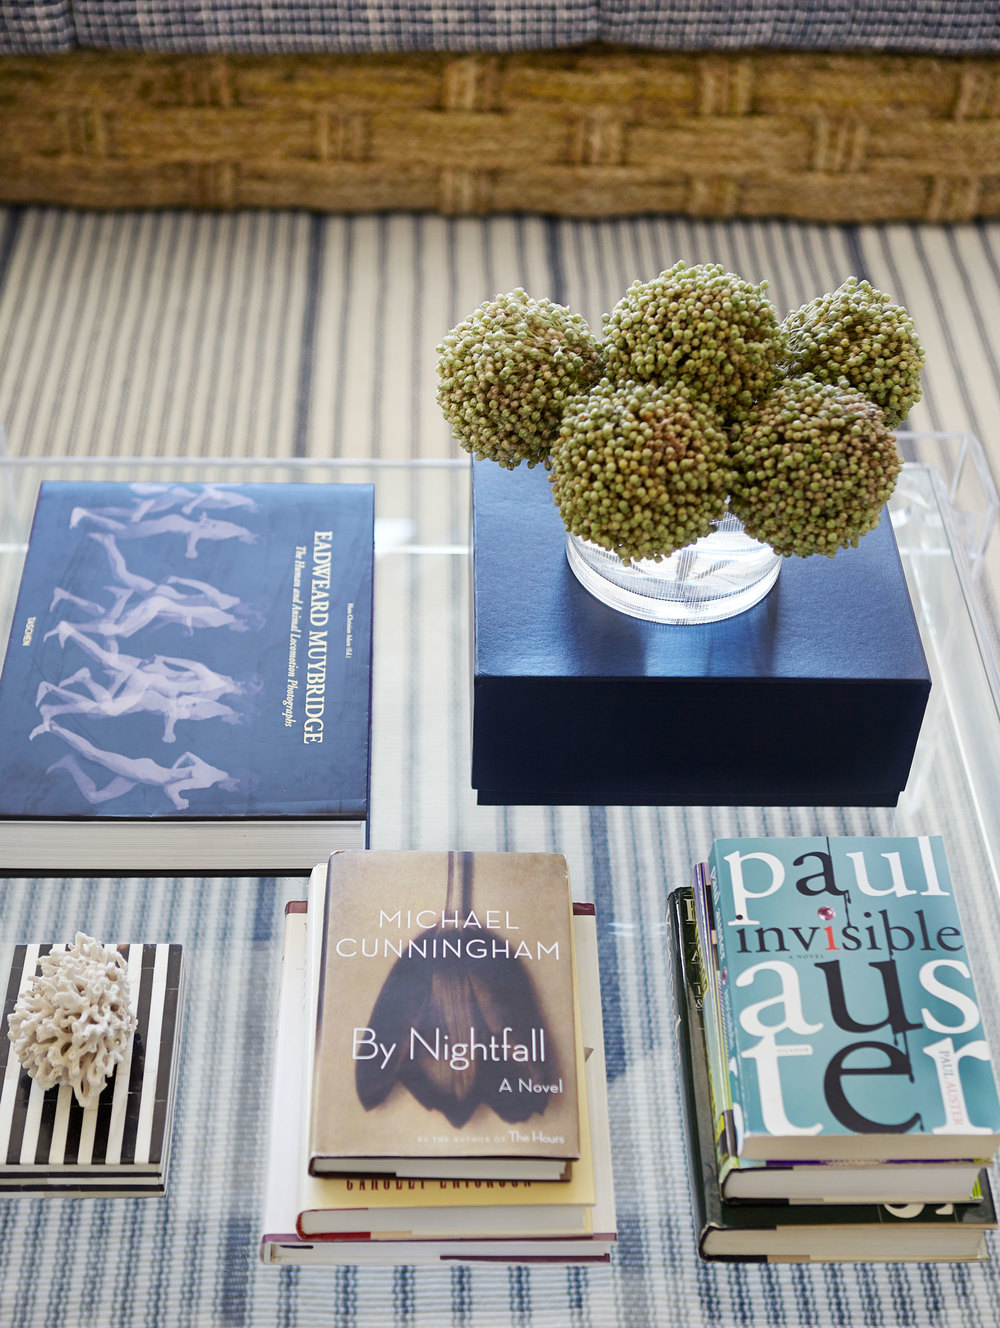 lucite-coffee-table-vintage-book-display-white-coral-stripe-rug-diane-bergeron.jpg